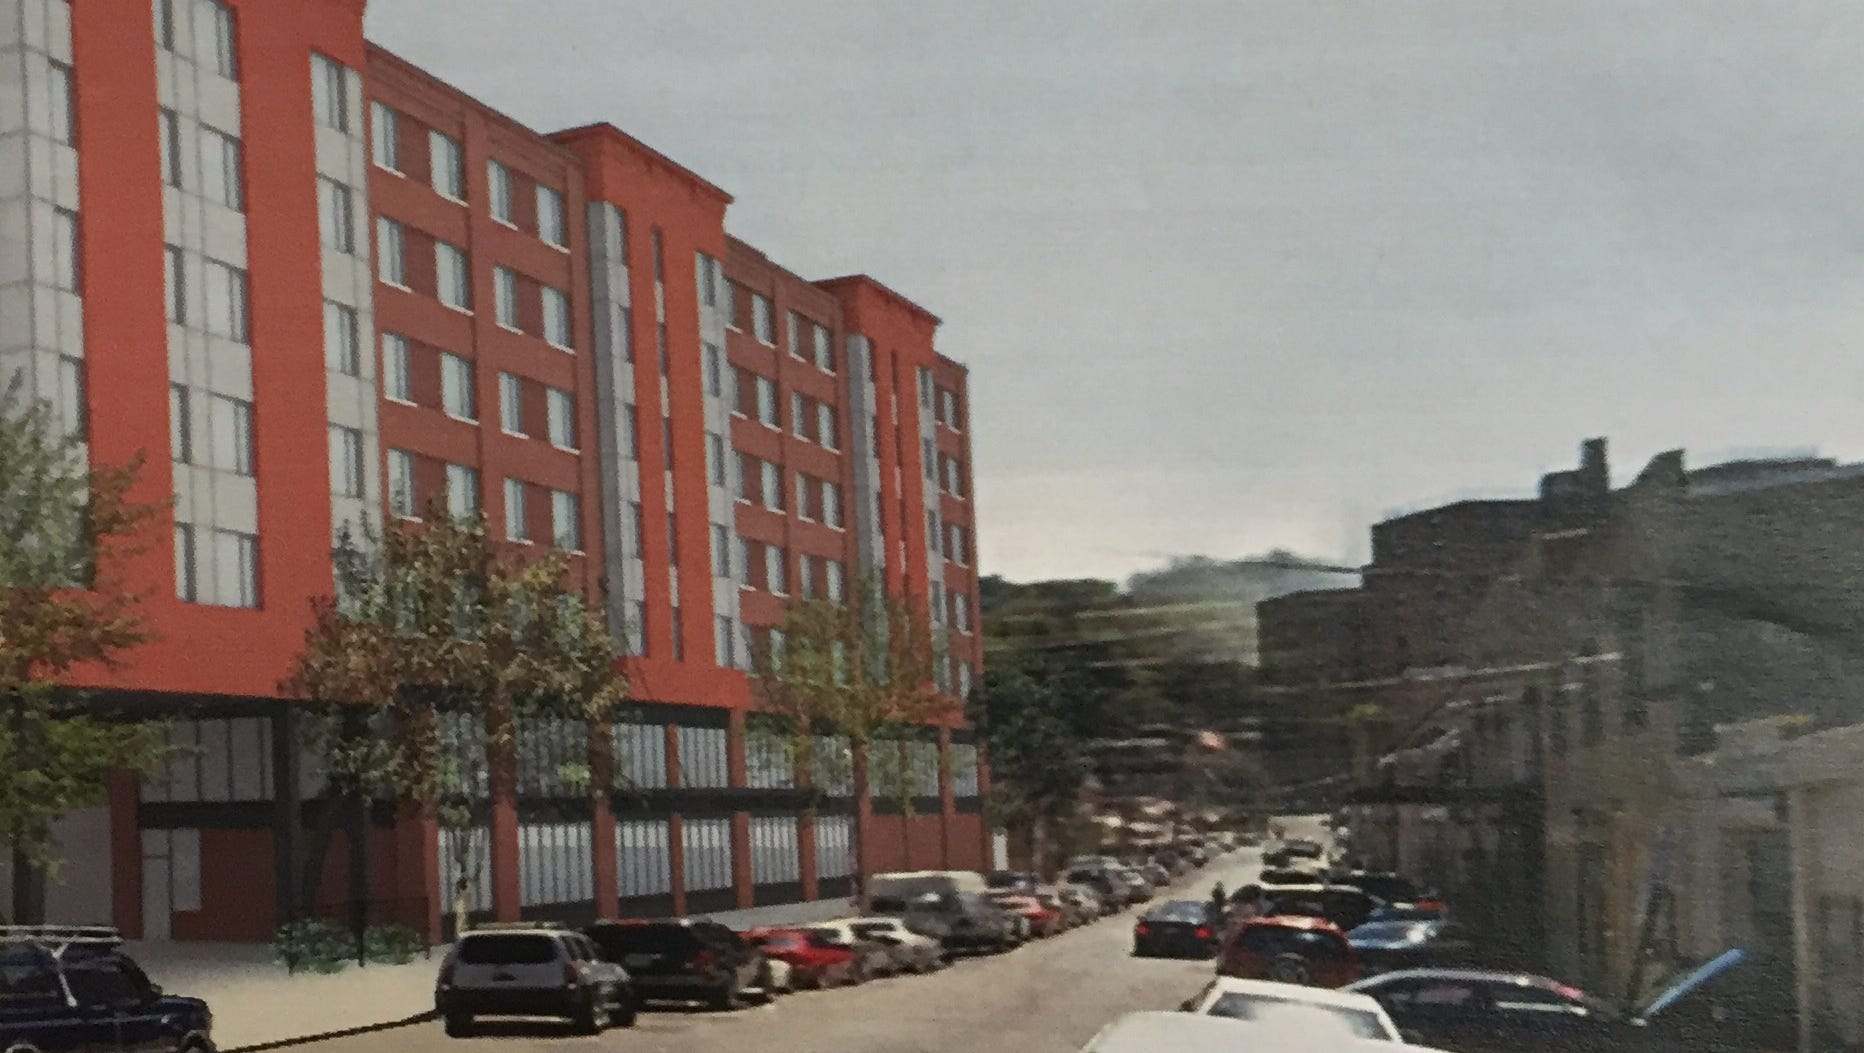 yonkers hospital proposes 80 apartment complex yonkers hospital proposes 80 apartment